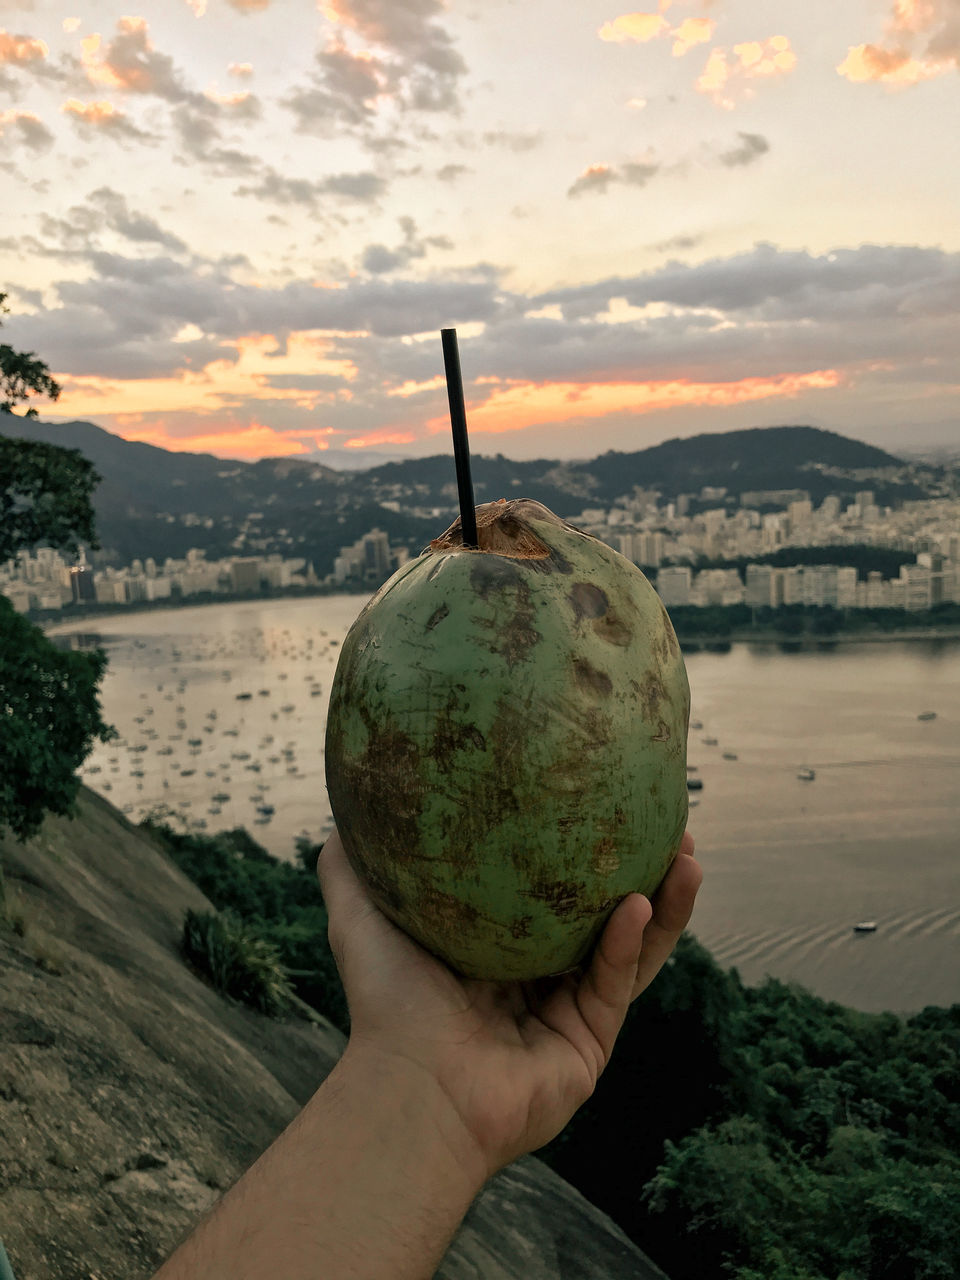 human hand, sky, human body part, holding, food and drink, one person, cloud - sky, outdoors, real people, mountain, water, river, nature, focus on foreground, sunset, food, freshness, fruit, close-up, men, tree, healthy eating, beauty in nature, day, coconut, building exterior, people